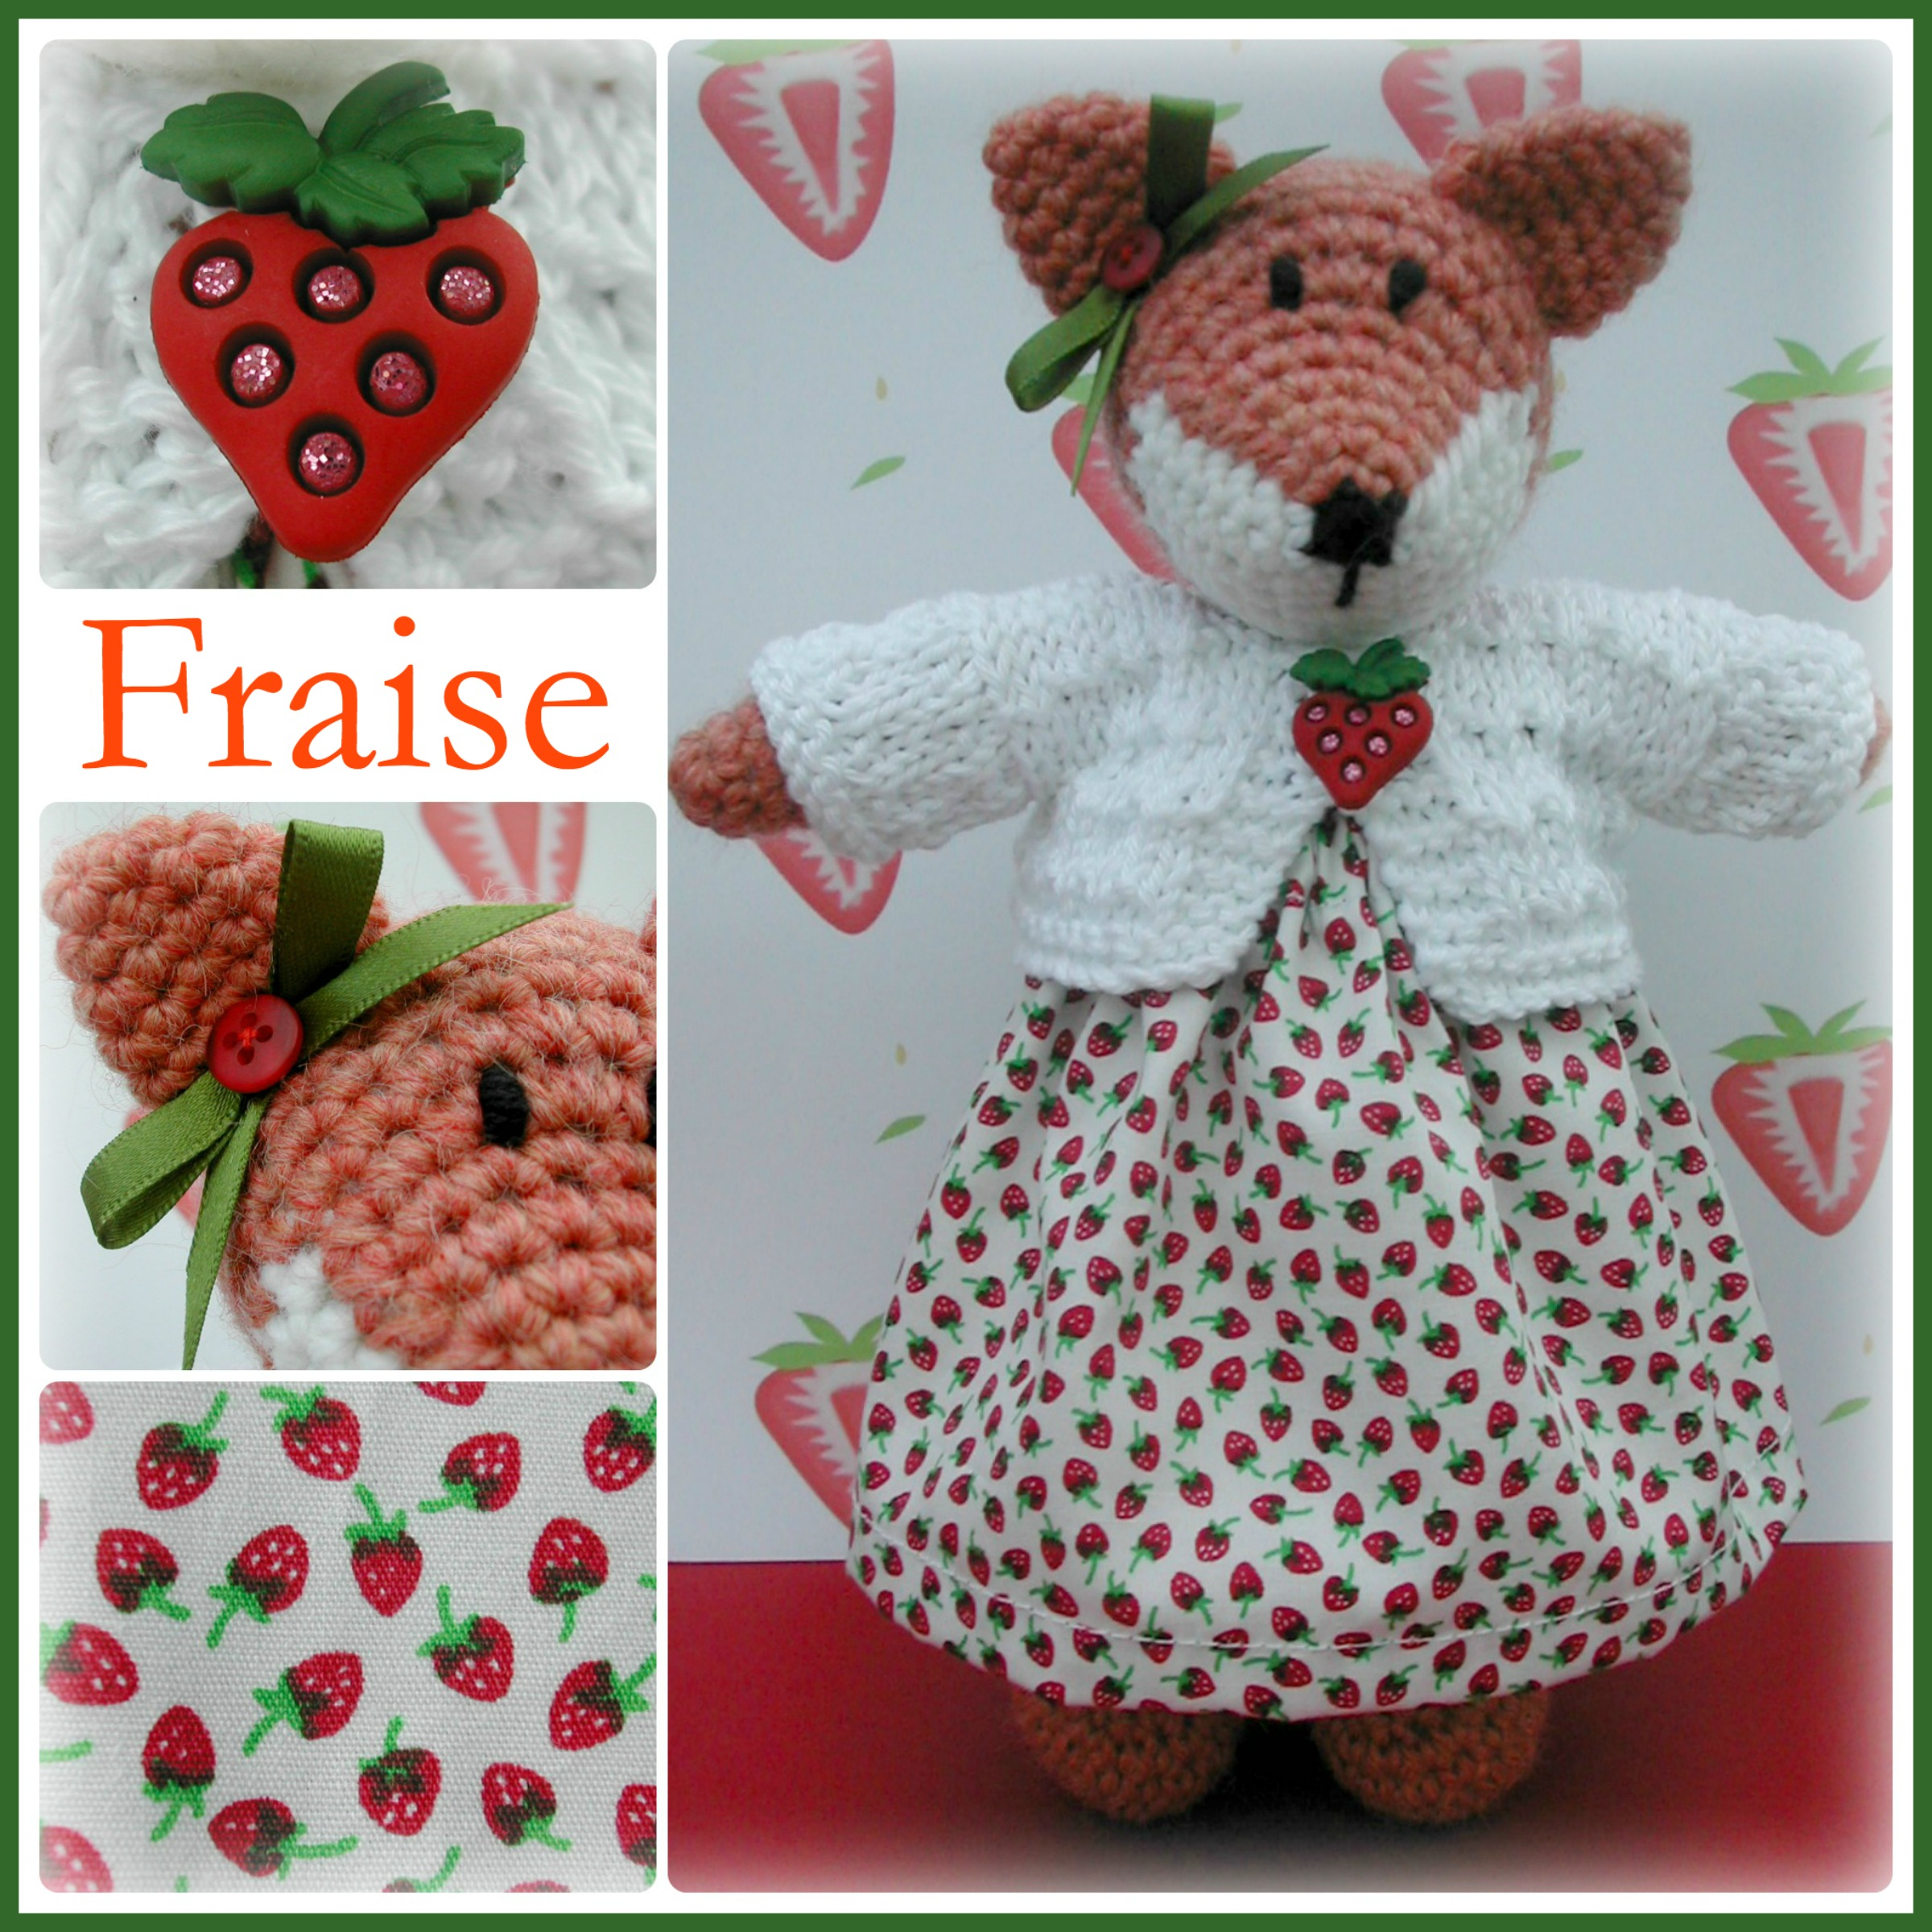 Fraise Collage